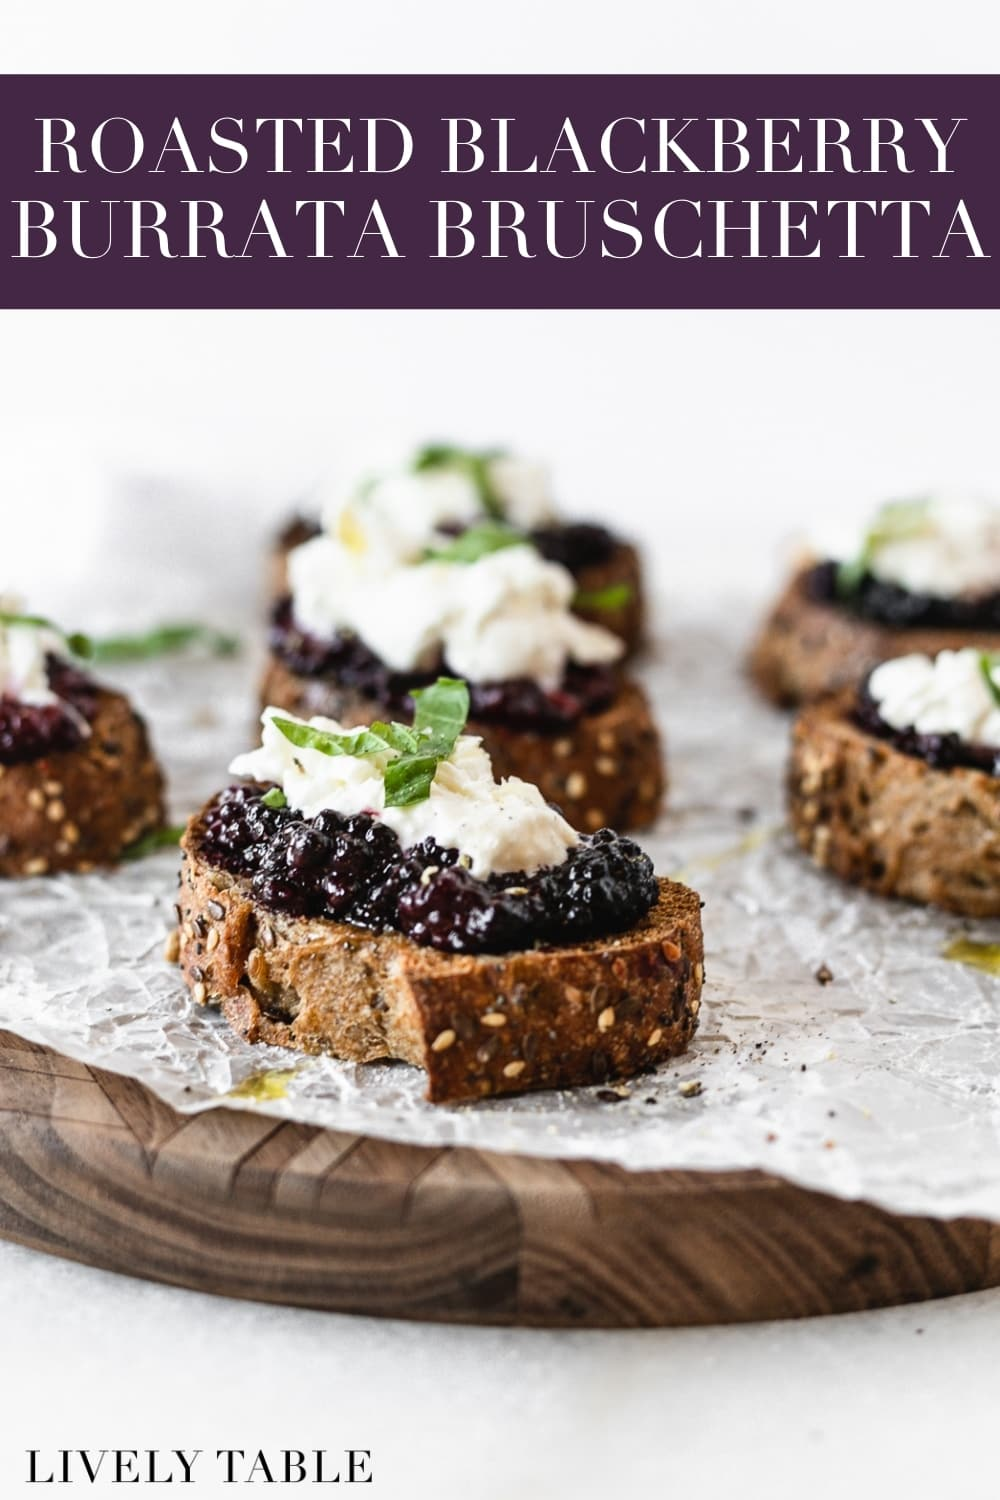 Roasted berries and creamy burrata cheese are a delicious combination atop crisp sourdough toast in this Balsamic Roasted Berry Bruschetta with Burrata. It's a simple summer appetizer that can be made quickly for guests! (#nutfree) #bruschetta #appetizer #berries #summer #recipes #burrata